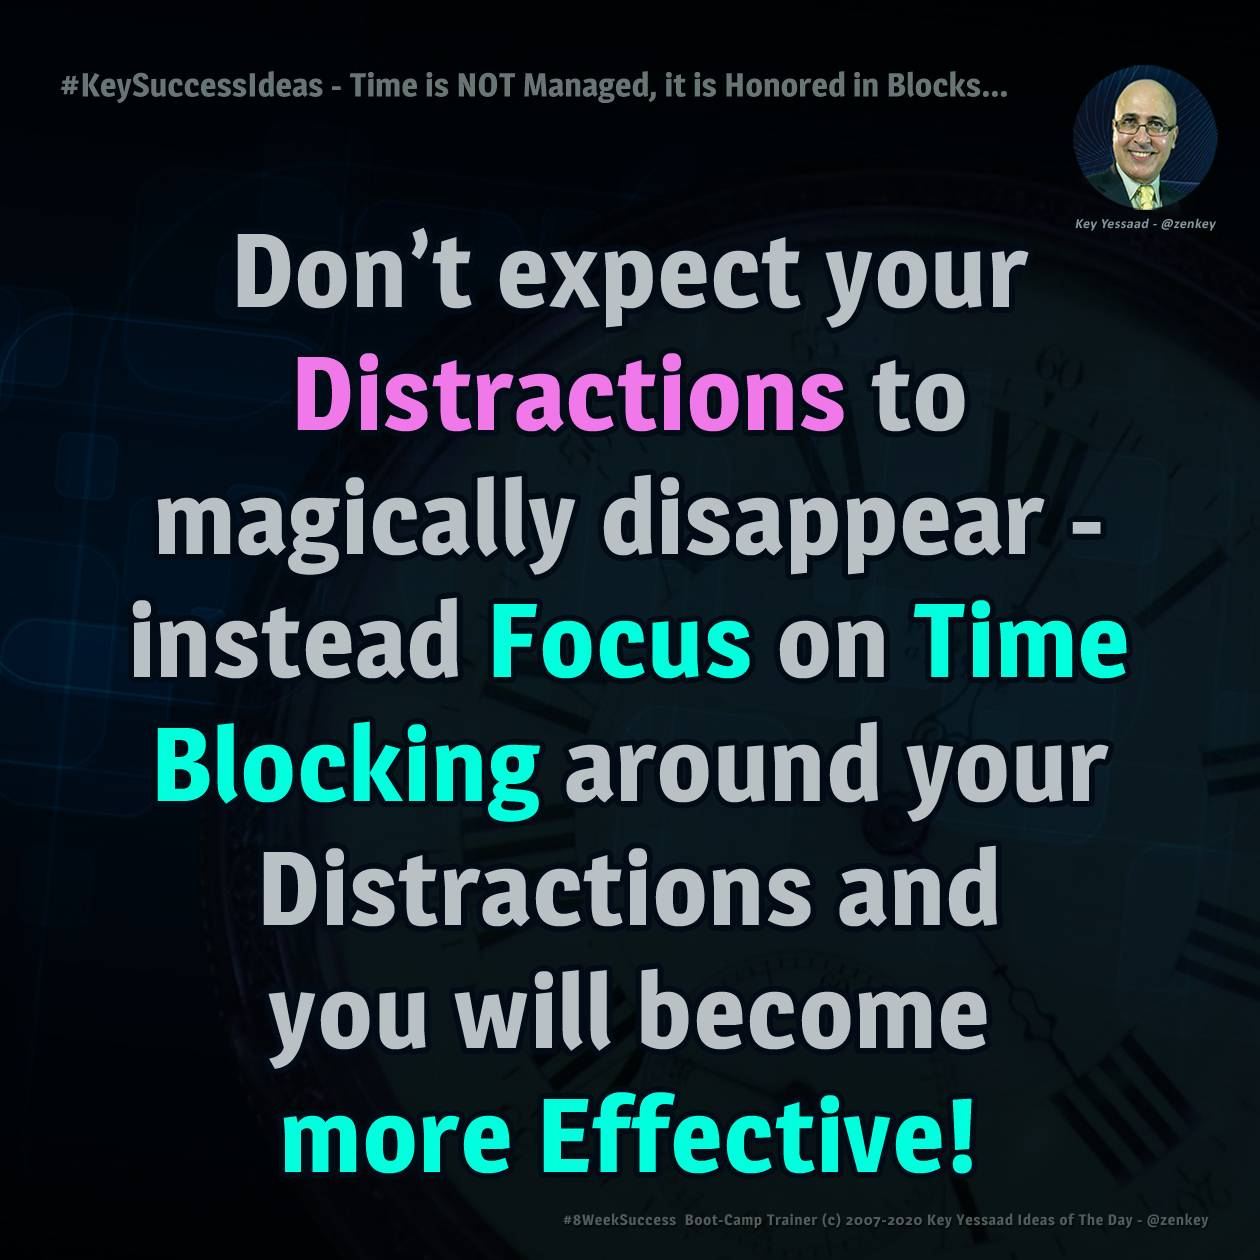 Time is NOT Managed, it is Honored in Blocks... - #KeySuccessIdeas